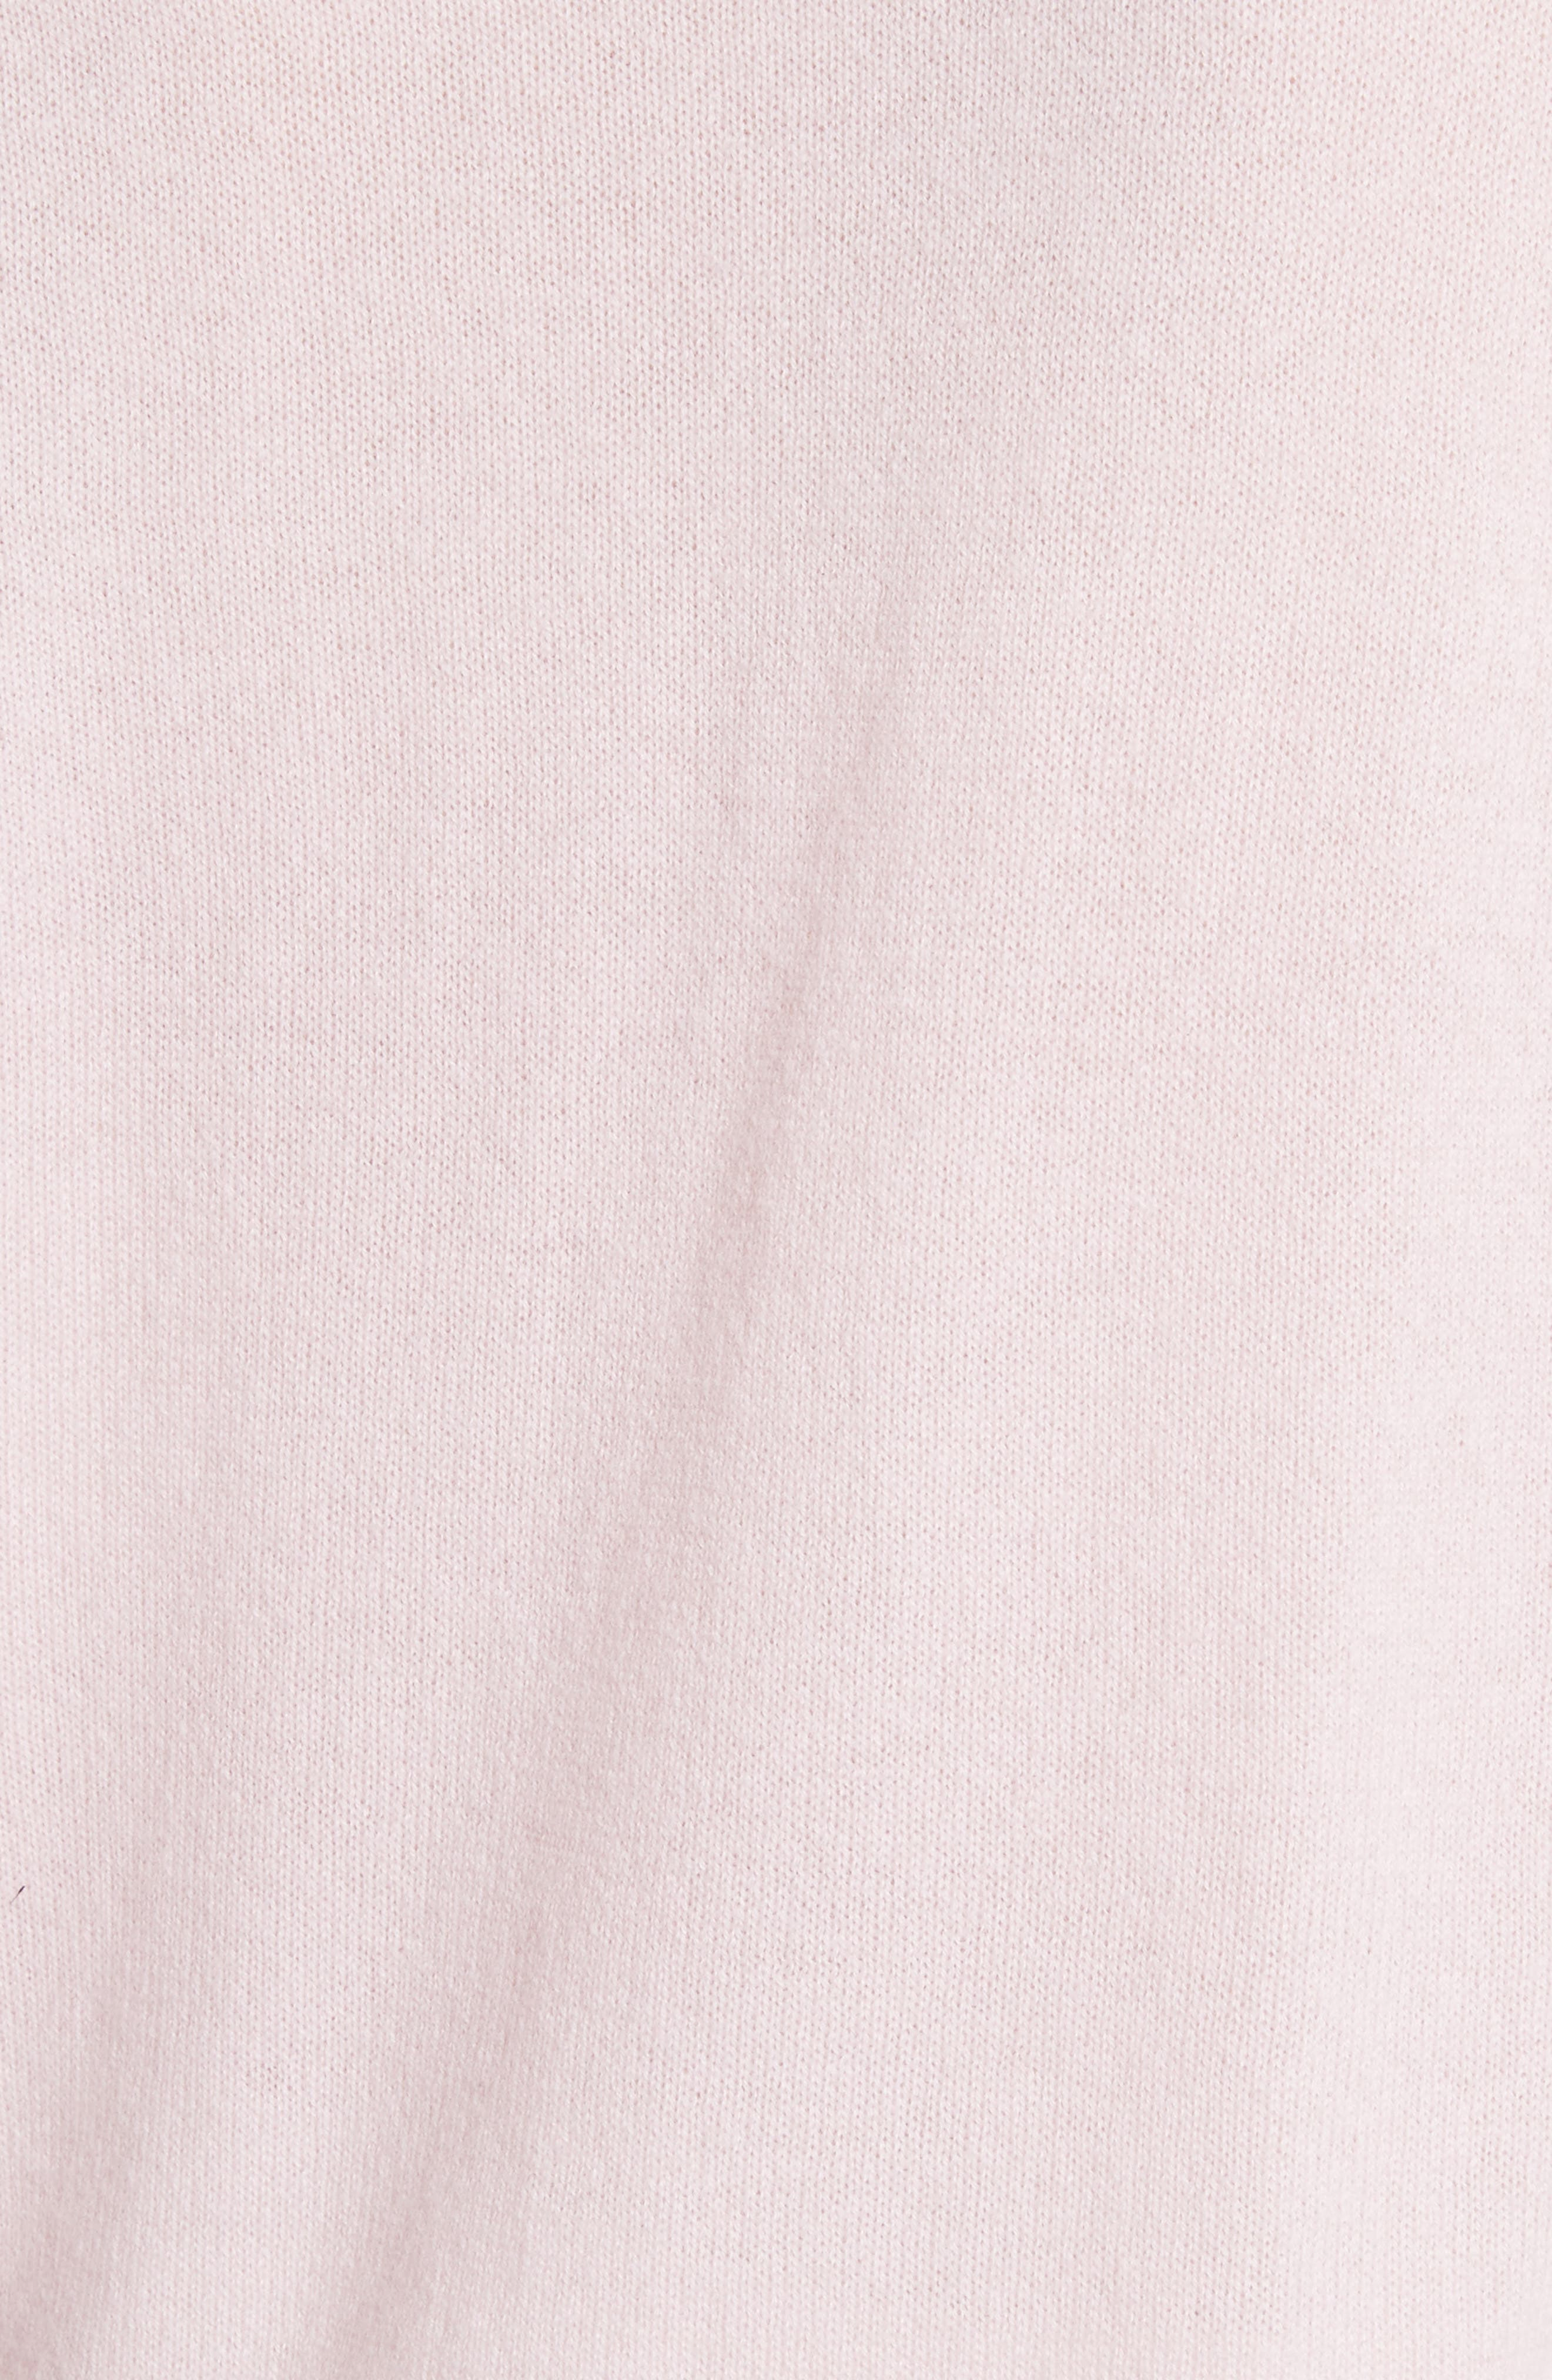 Bryce Oversize Cashmere Sweater,                             Alternate thumbnail 5, color,                             650